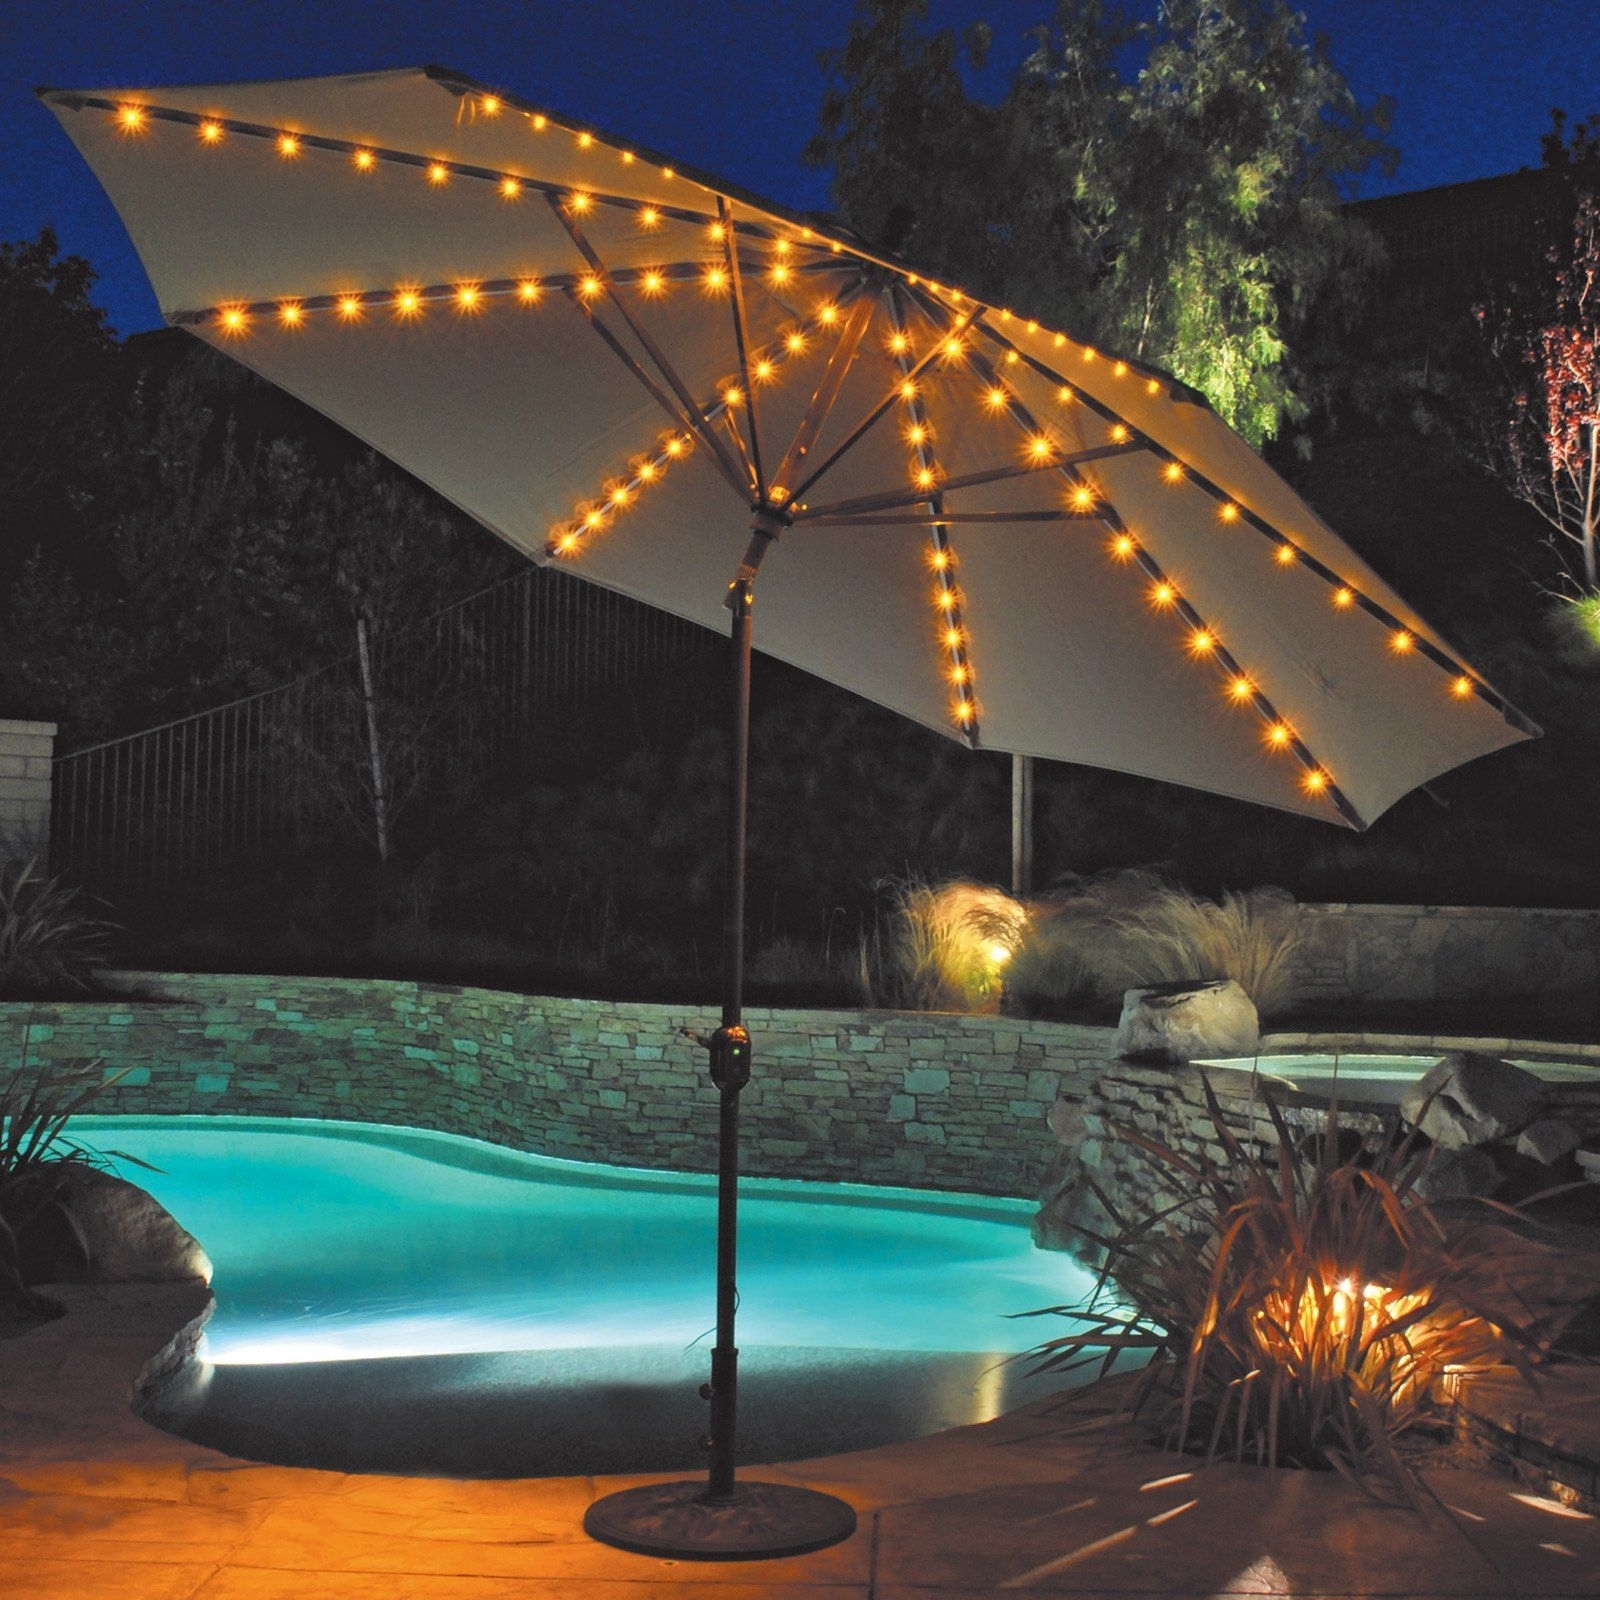 Galtech 11 Ft. Auto Tilt Patio Umbrella With Led Umbrella Lights Intended For Newest Patio Umbrella Lights (Gallery 8 of 20)